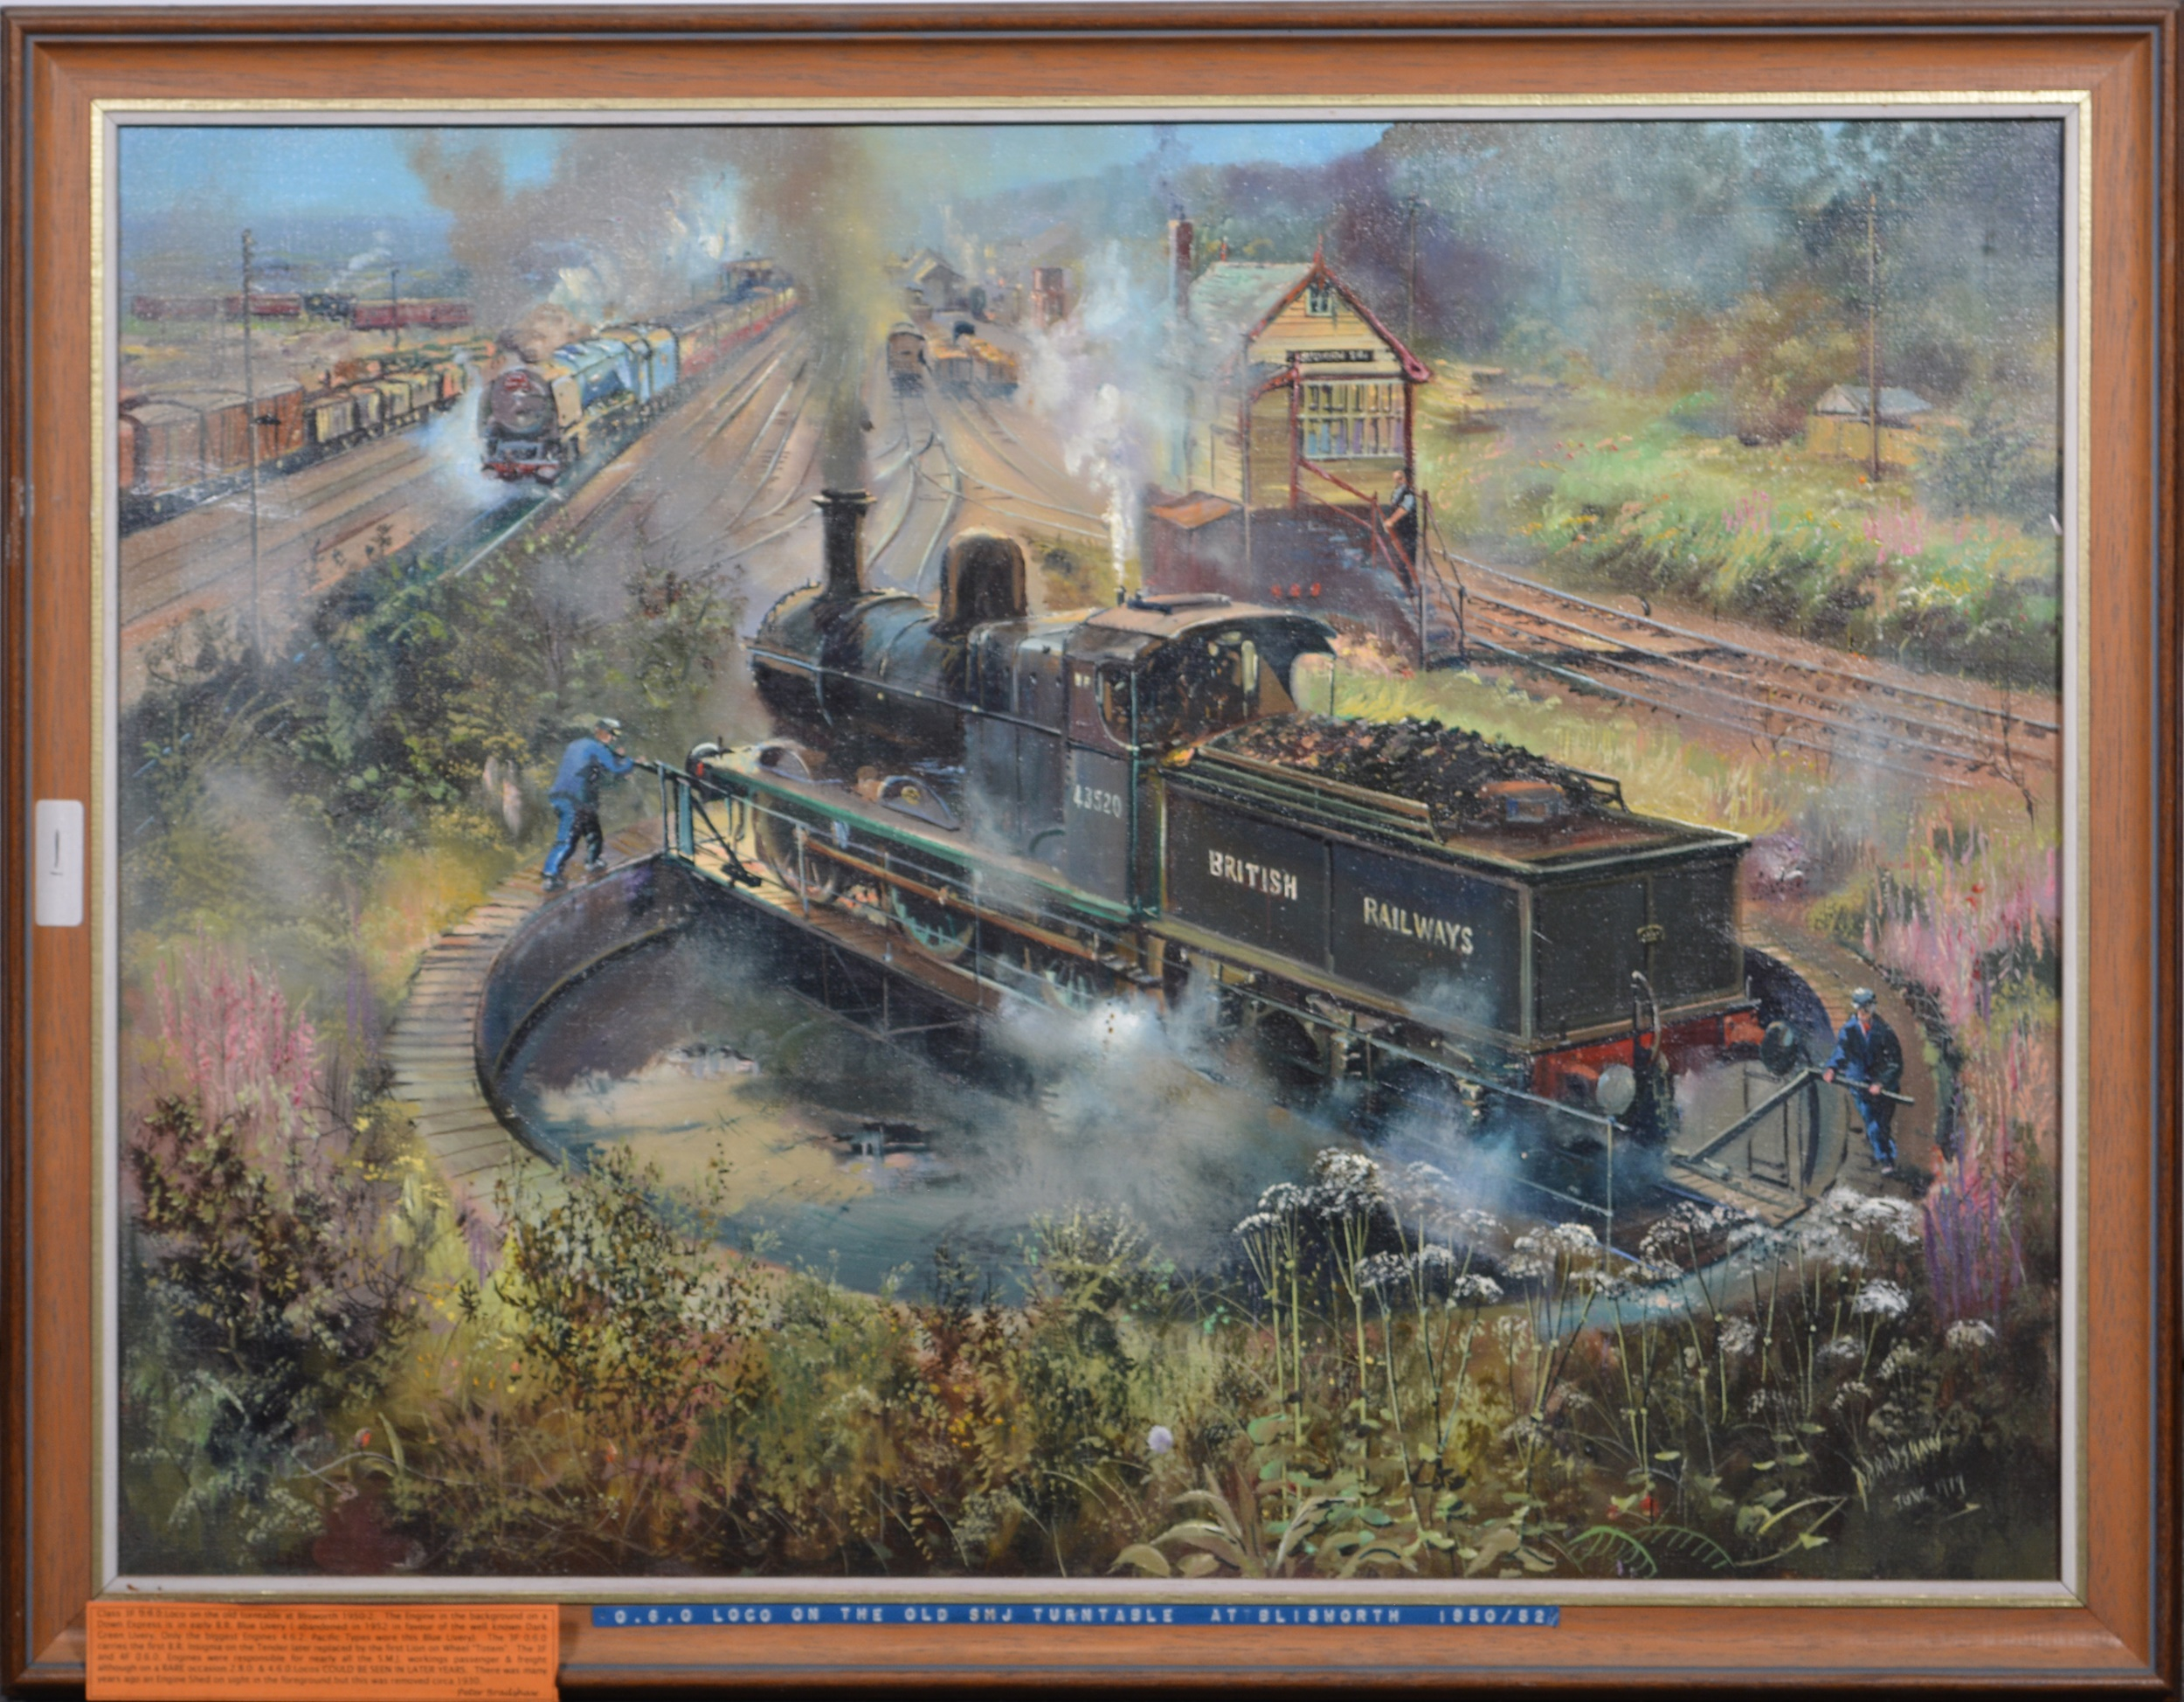 Peter Bradshaw, Loco on The Old SMJ Turntable at Blisworth - Image 2 of 4